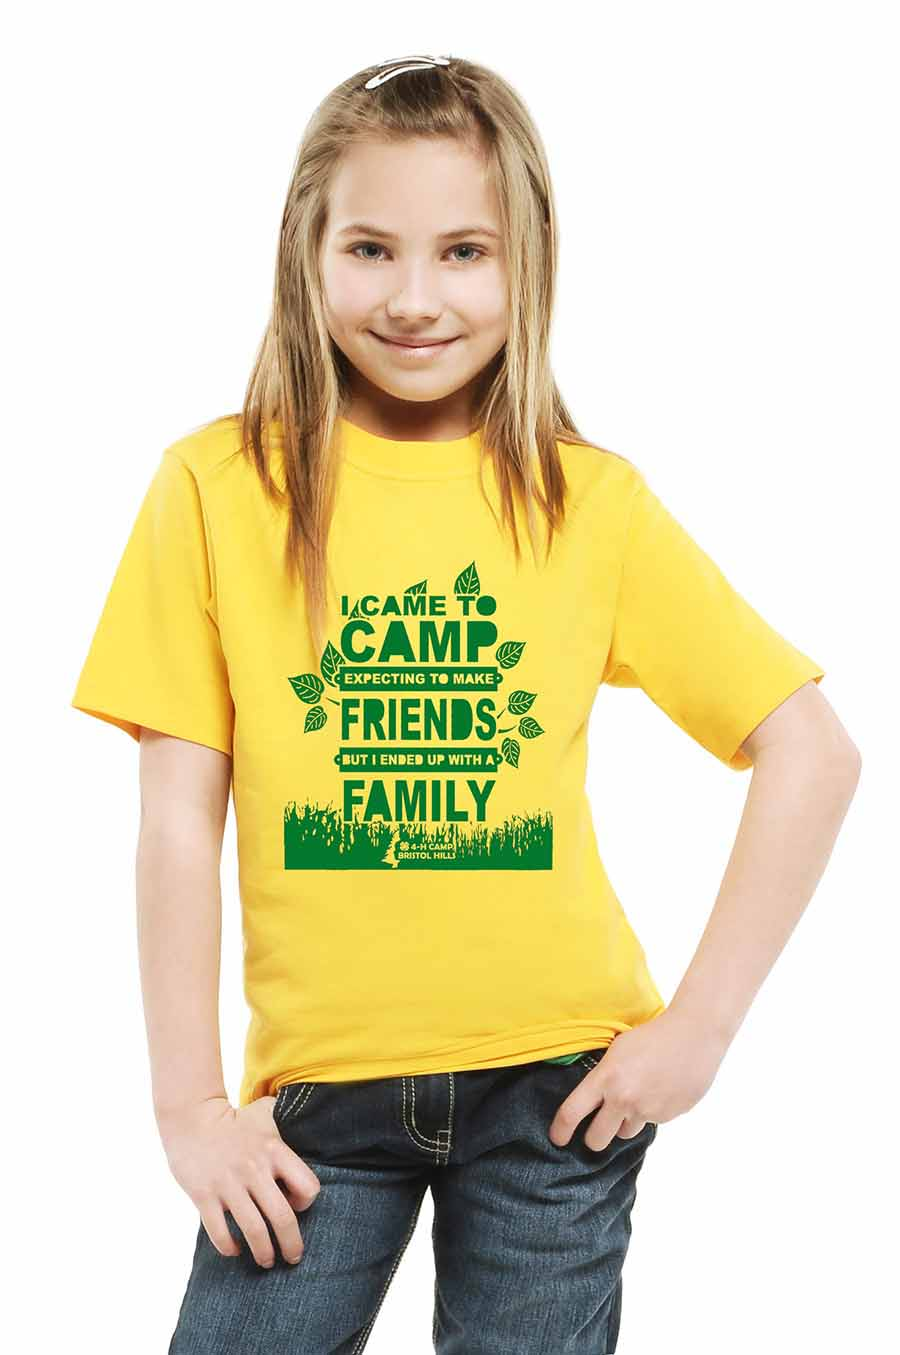 Camp shirt for camp store page.